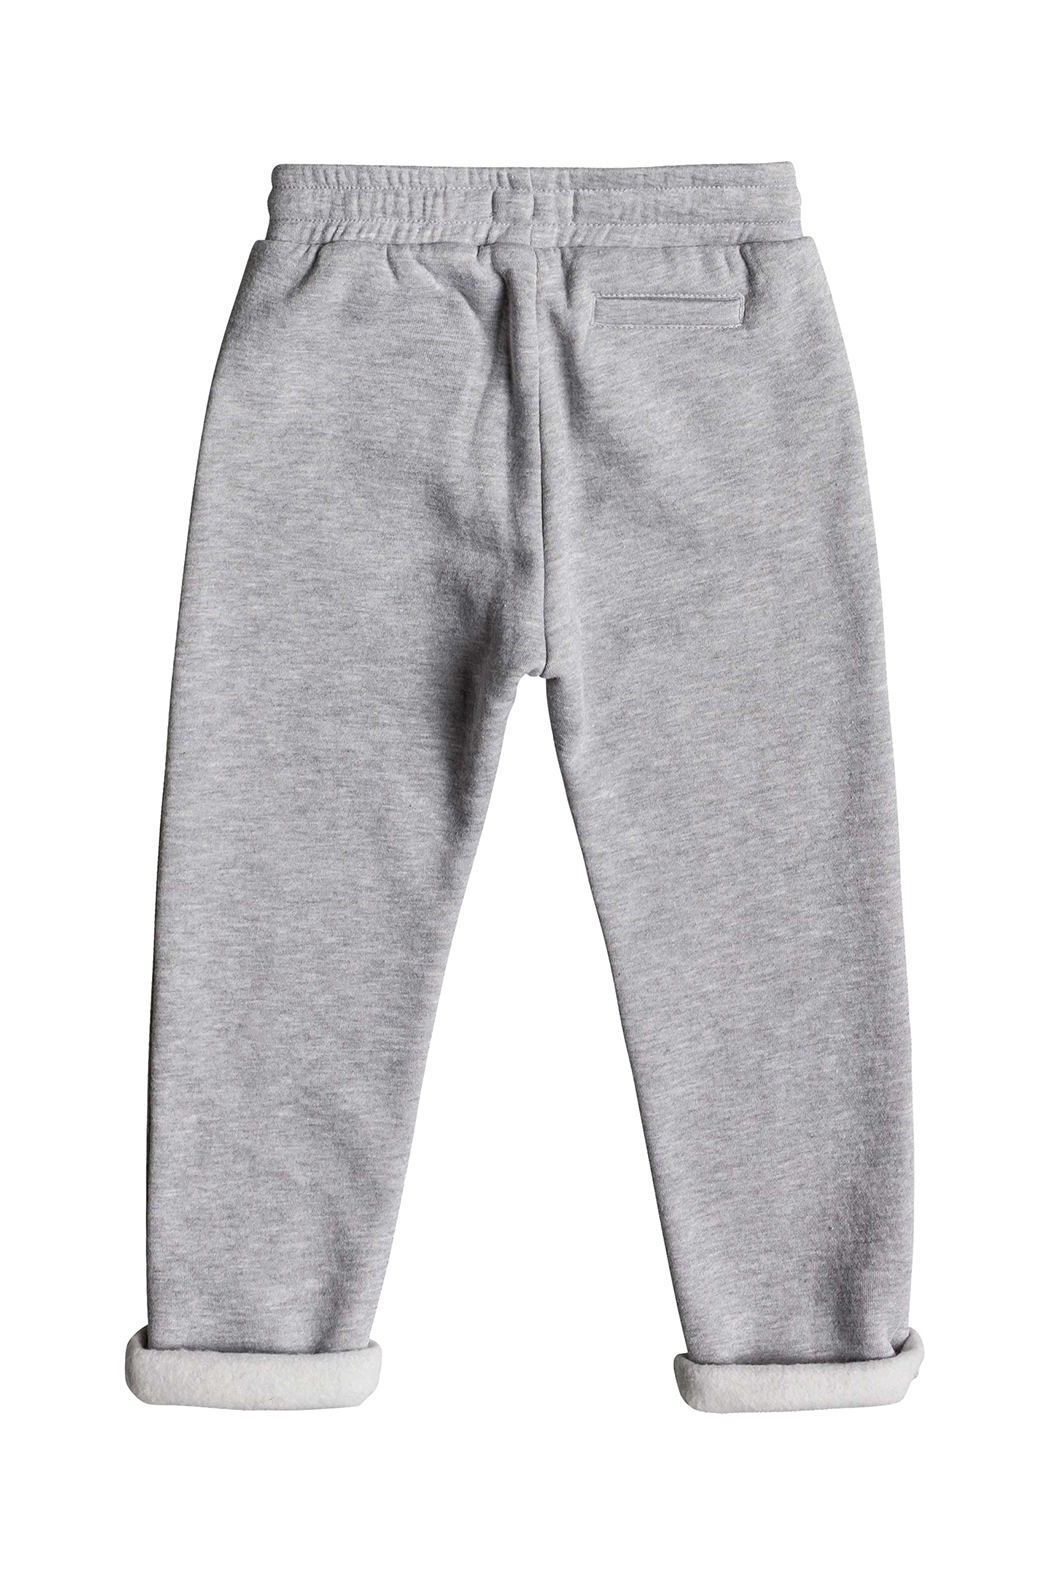 Roxy Let Her Song Jogger Pants - Front Full Image